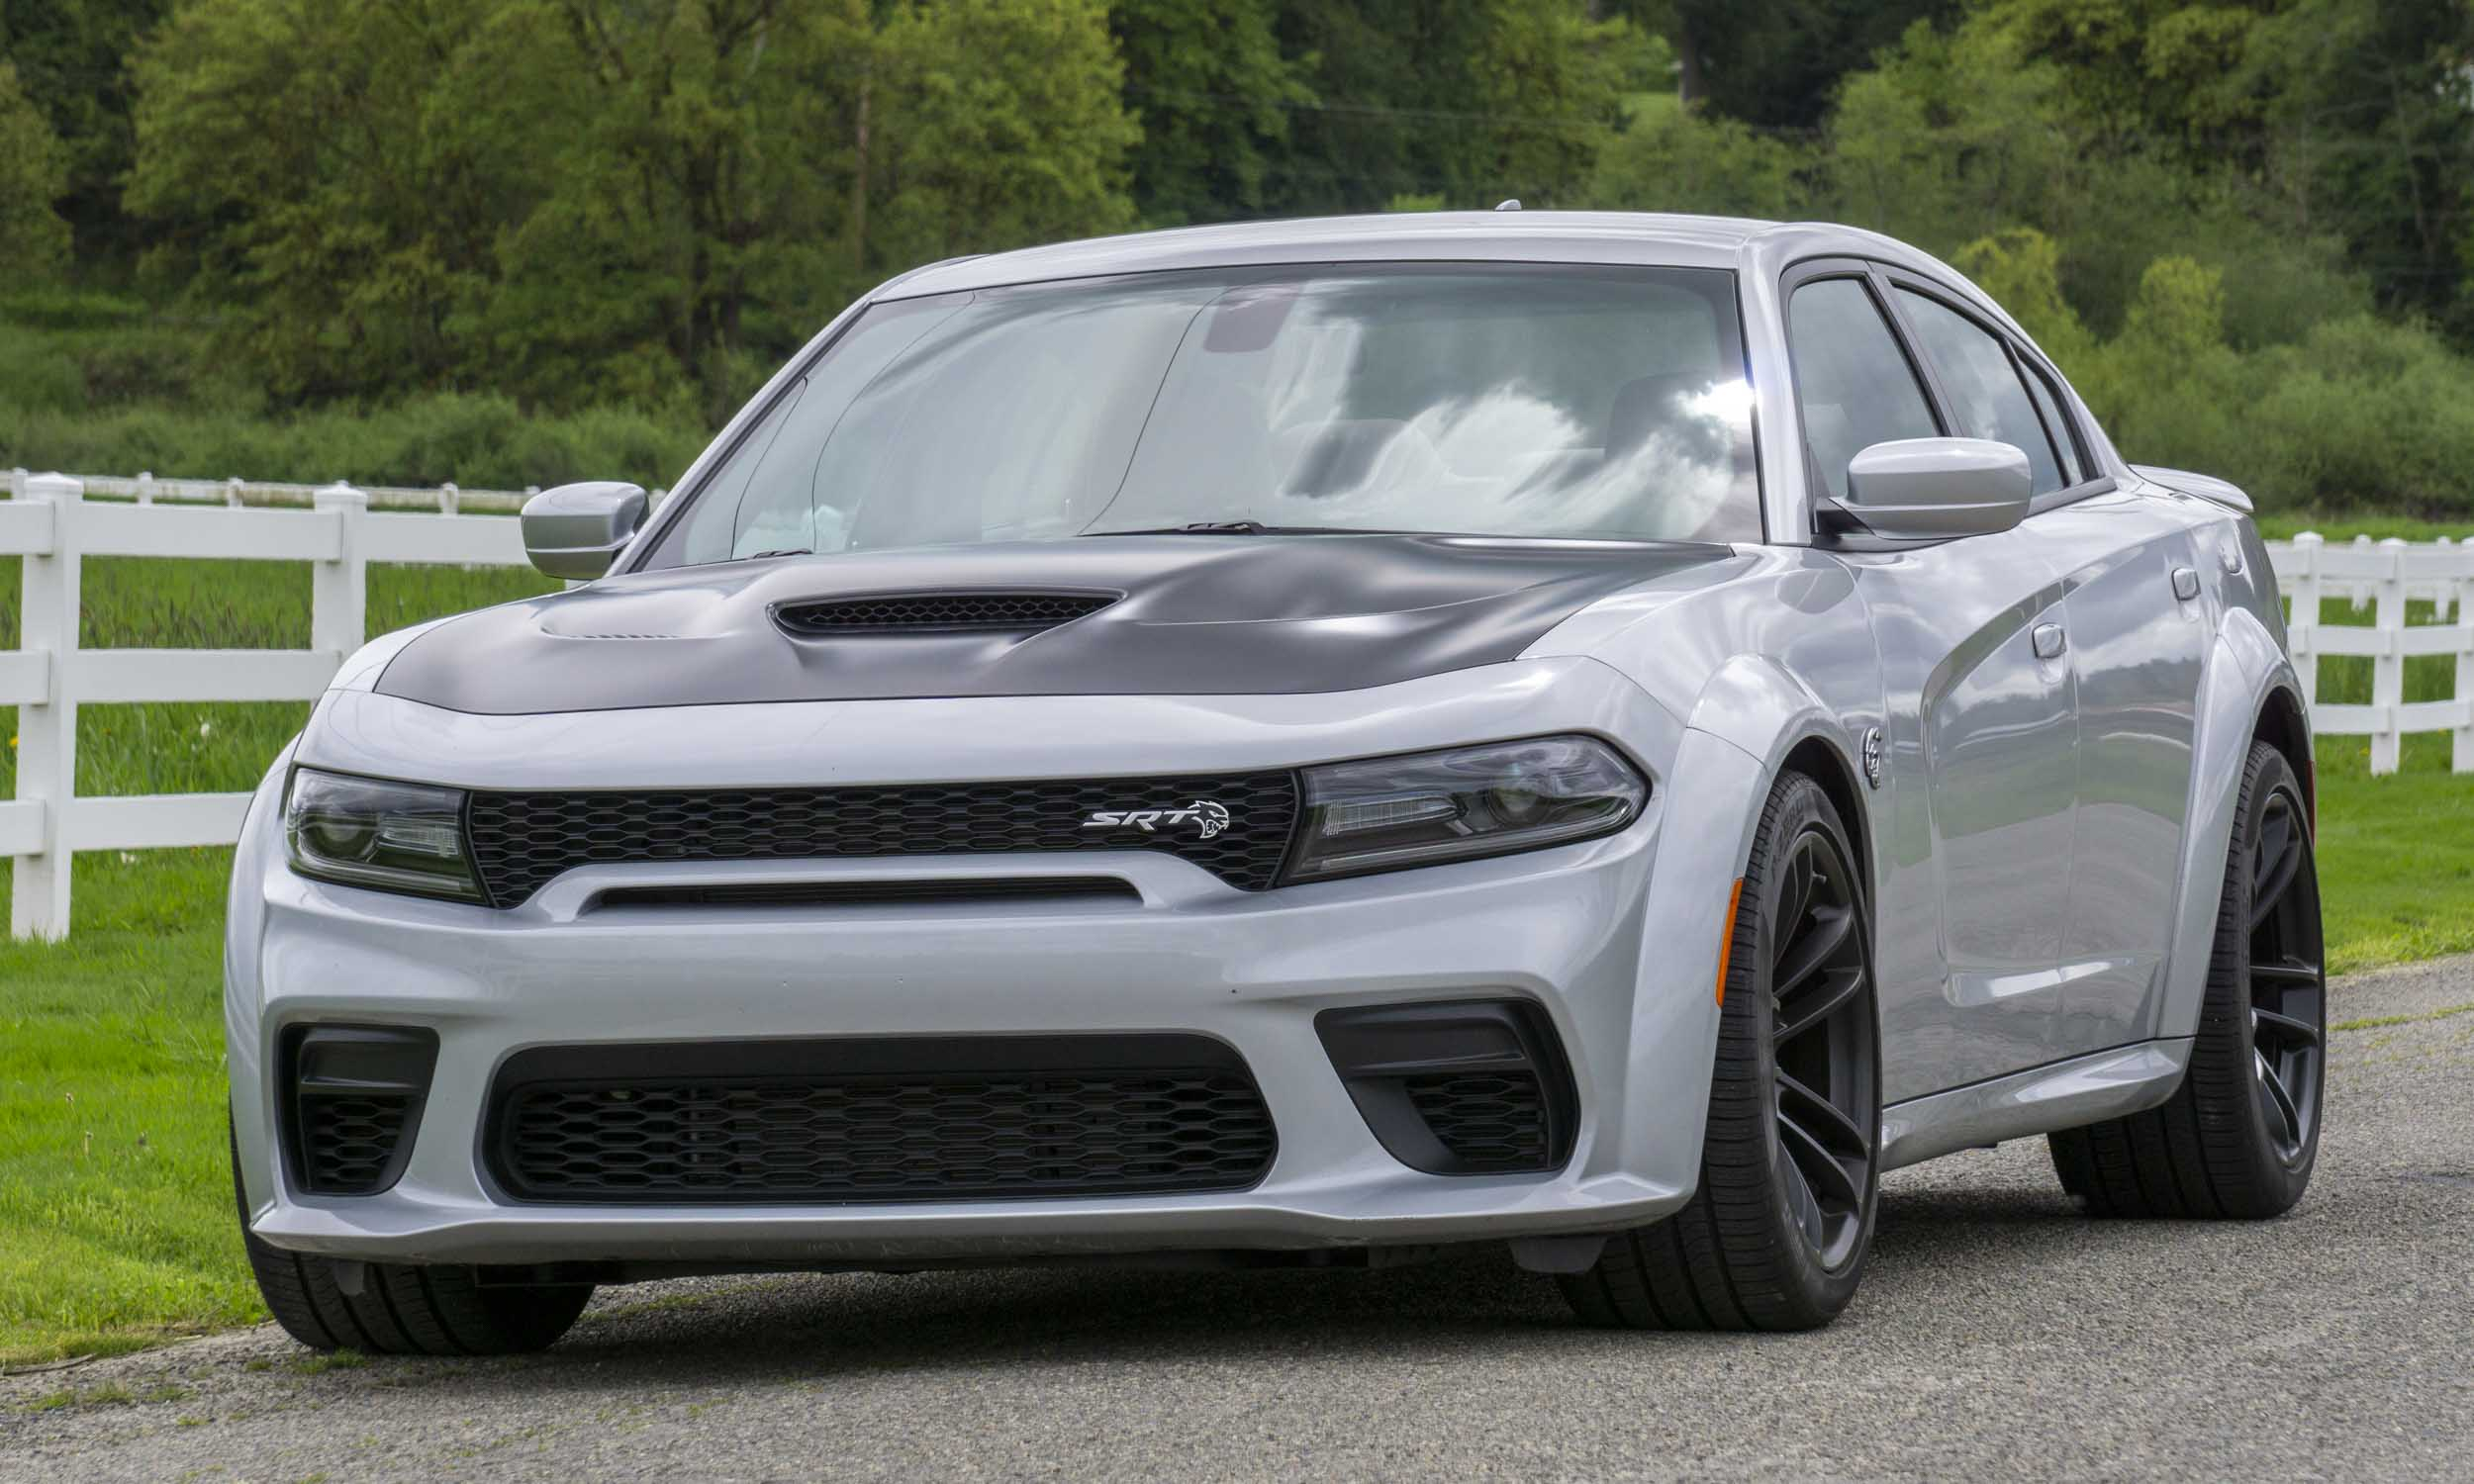 2020 Dodge Charger Srt Hellcat Widebody Review Our Auto Expert